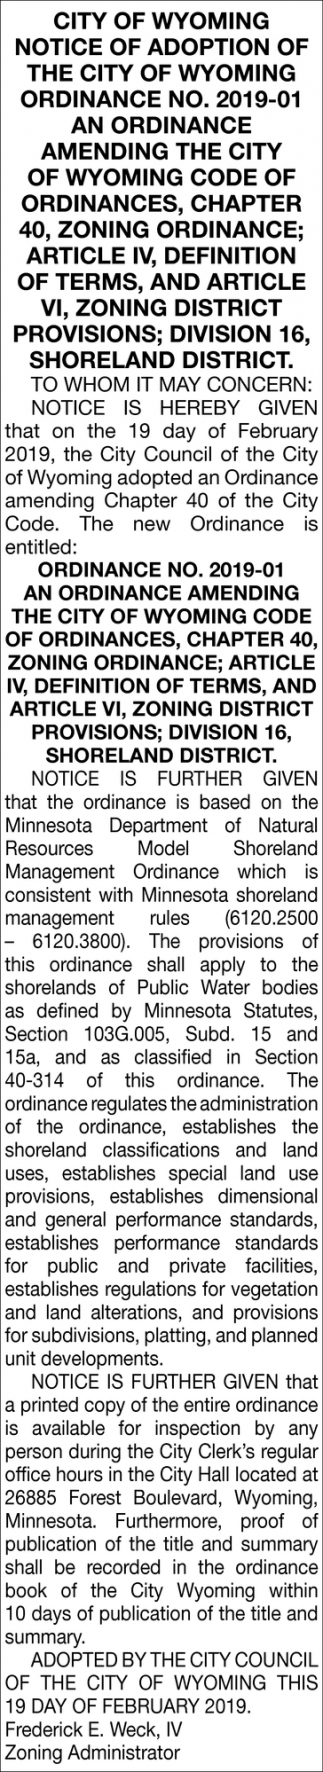 Notice of Adoption of the City of Wyoming